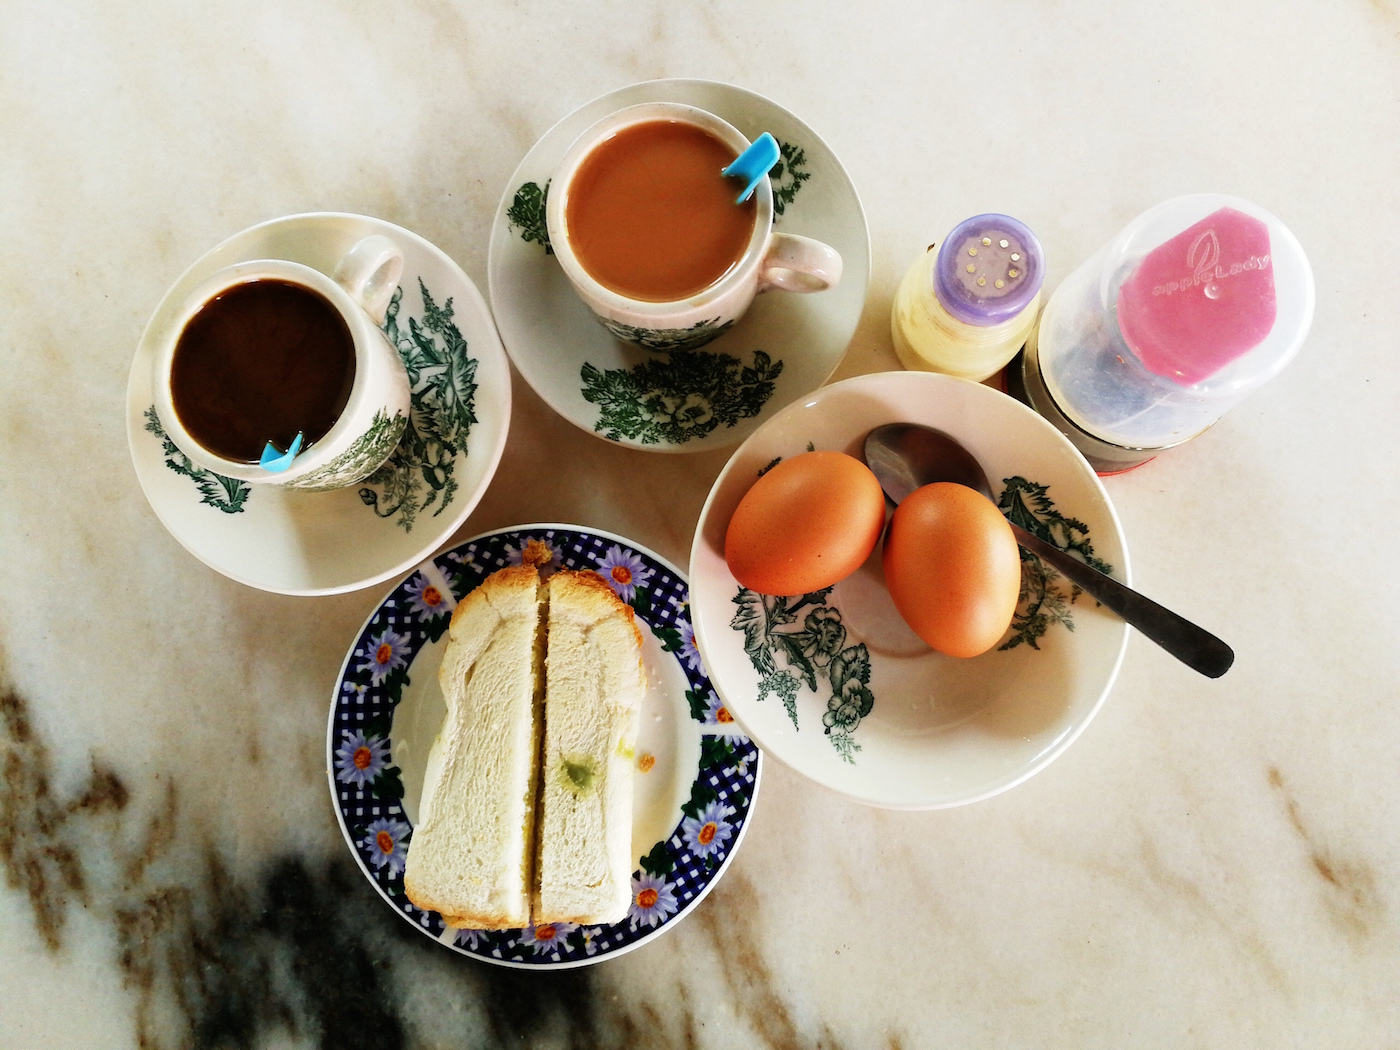 Jonker Cafe Coffee, Toast and Eggs